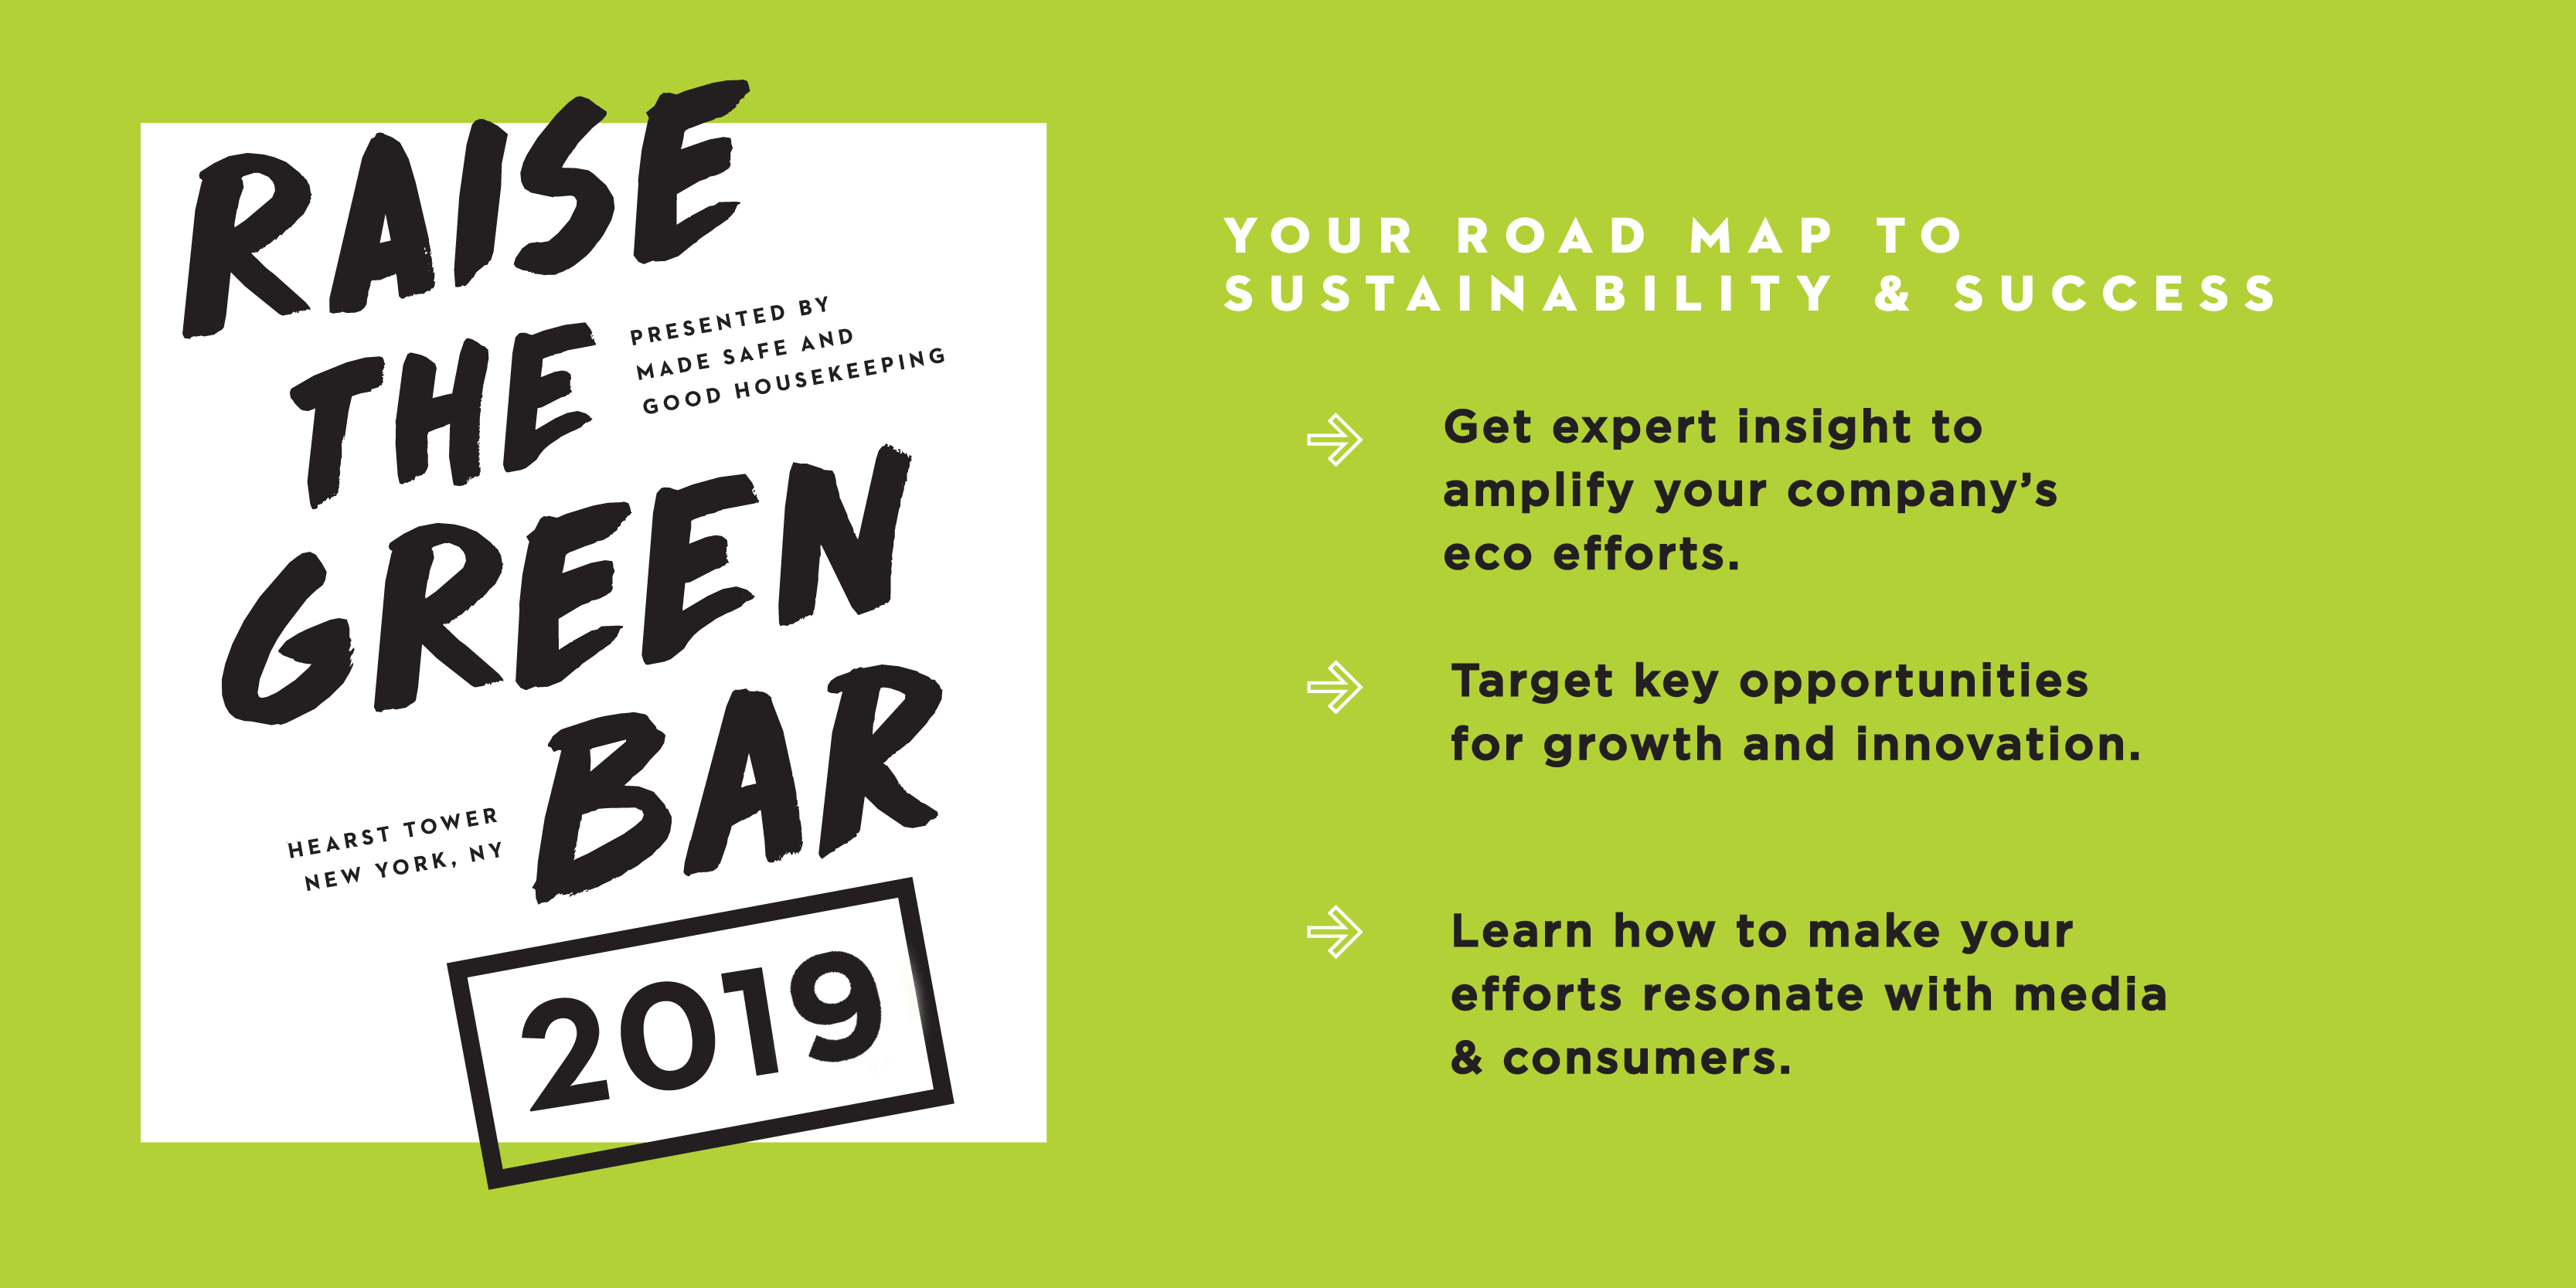 Raise the Green Bar 2019 Your Roadmap to Sustainability & Success